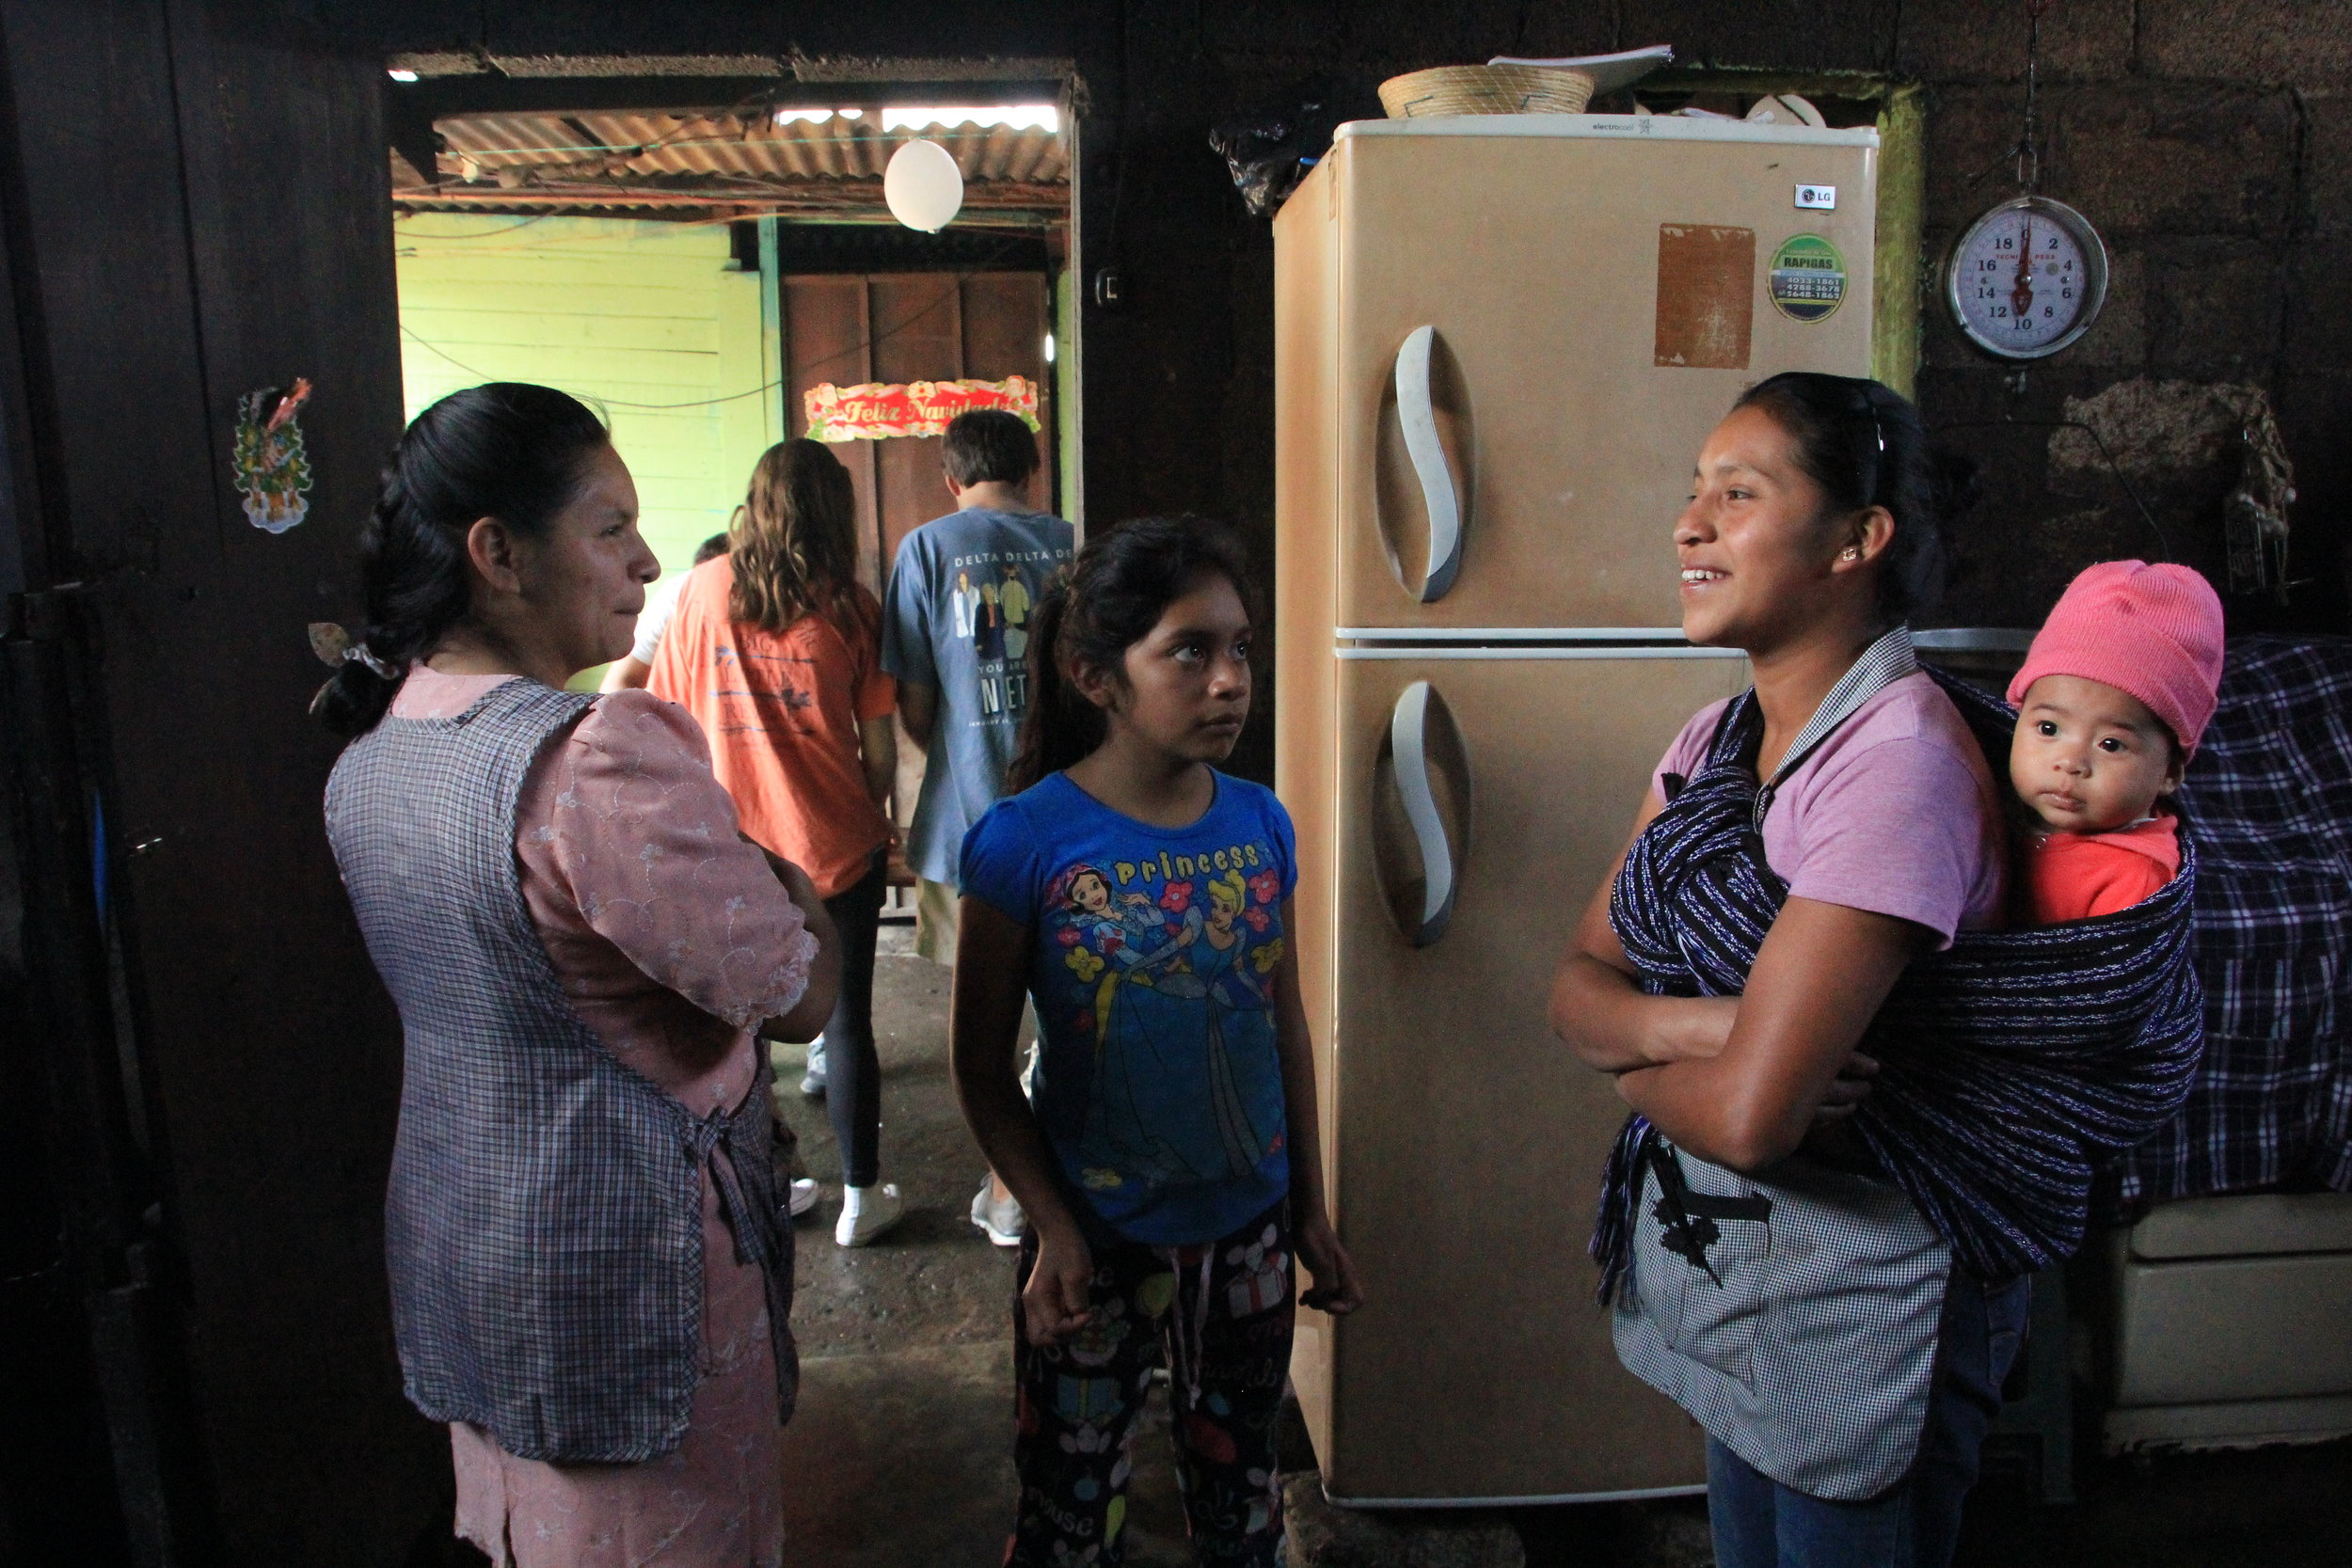 Lesbia (left),her daugher (center), and Valeriana with her baby (right) during a pepian cooking class with student's from Vanderbuilt University.